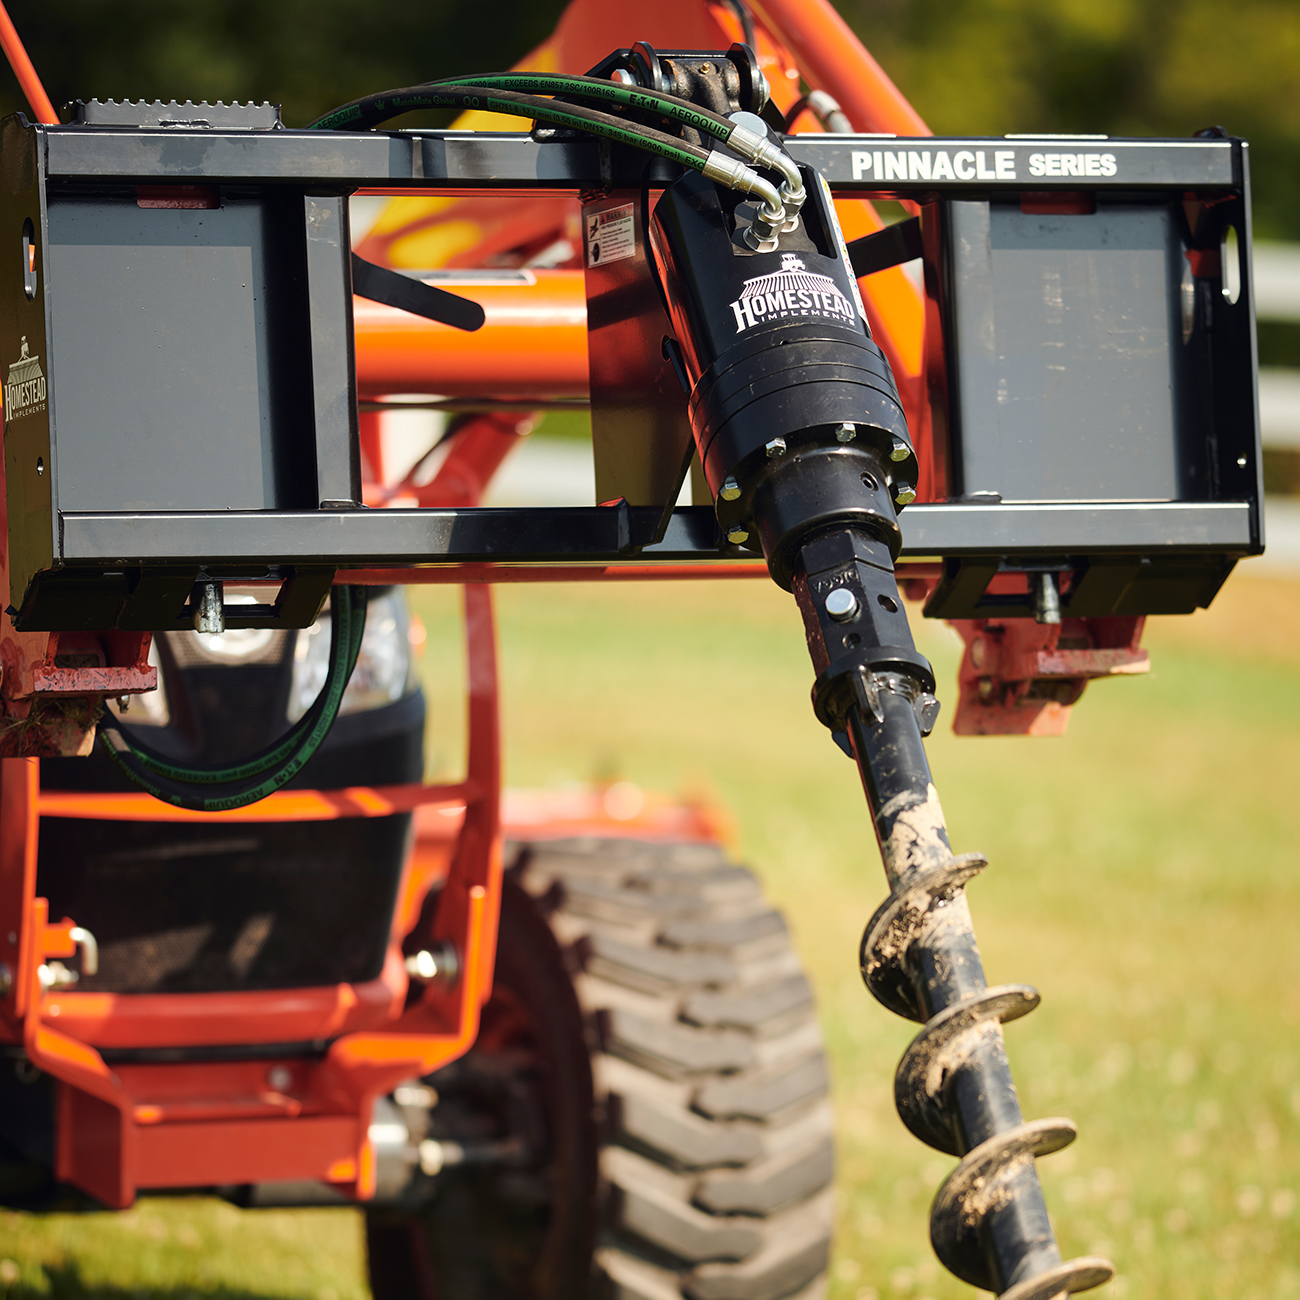 Front-End Post-Hole digger attached to tractor.